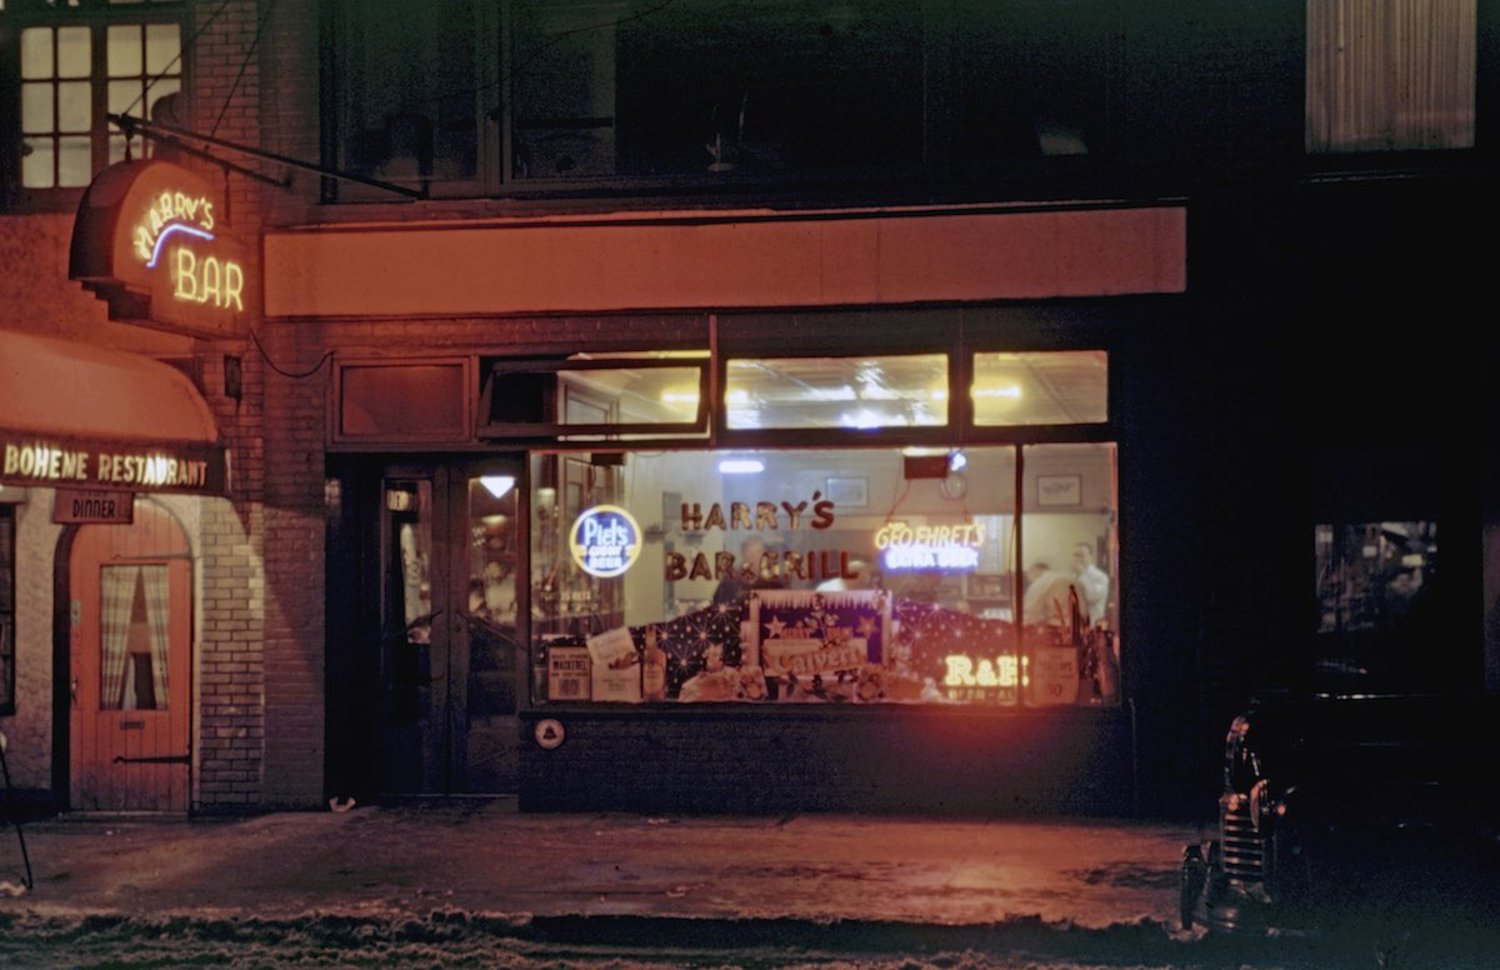 1946 Little neighborhood bar called 'Harry's Bar' lit up at night on 52nd Street around 7th Avenue Mdtown area.